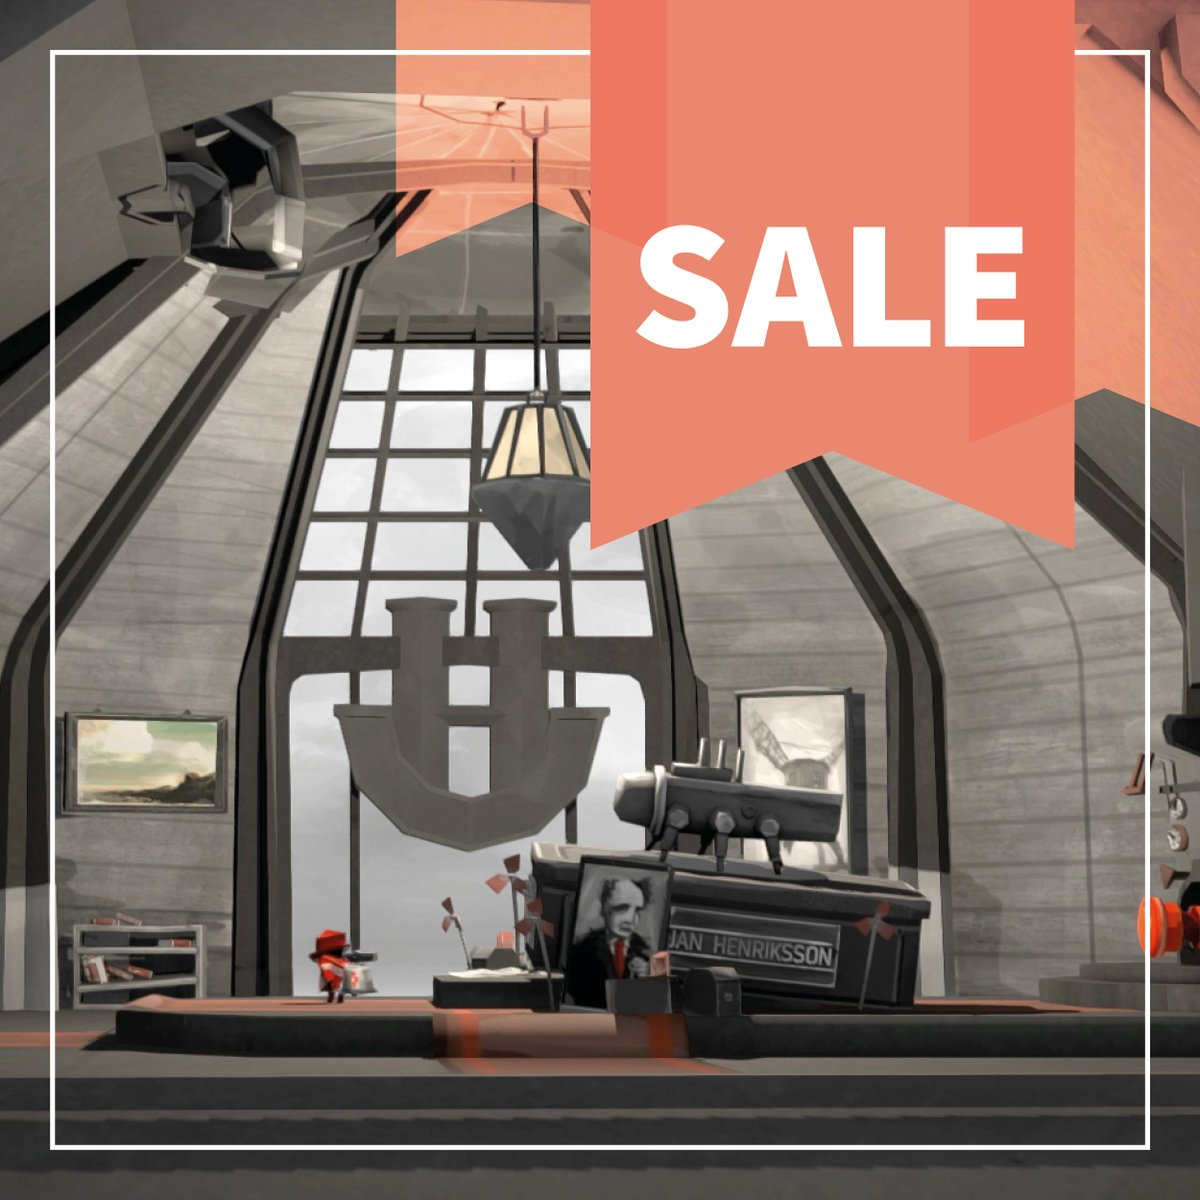 Time for another sale: this time, #NintendoSwitch fans in the Americas can save 40% on FAR: Lone Sails until June 17! nintendo.com/games/detail/f… #indiegames #indiedev